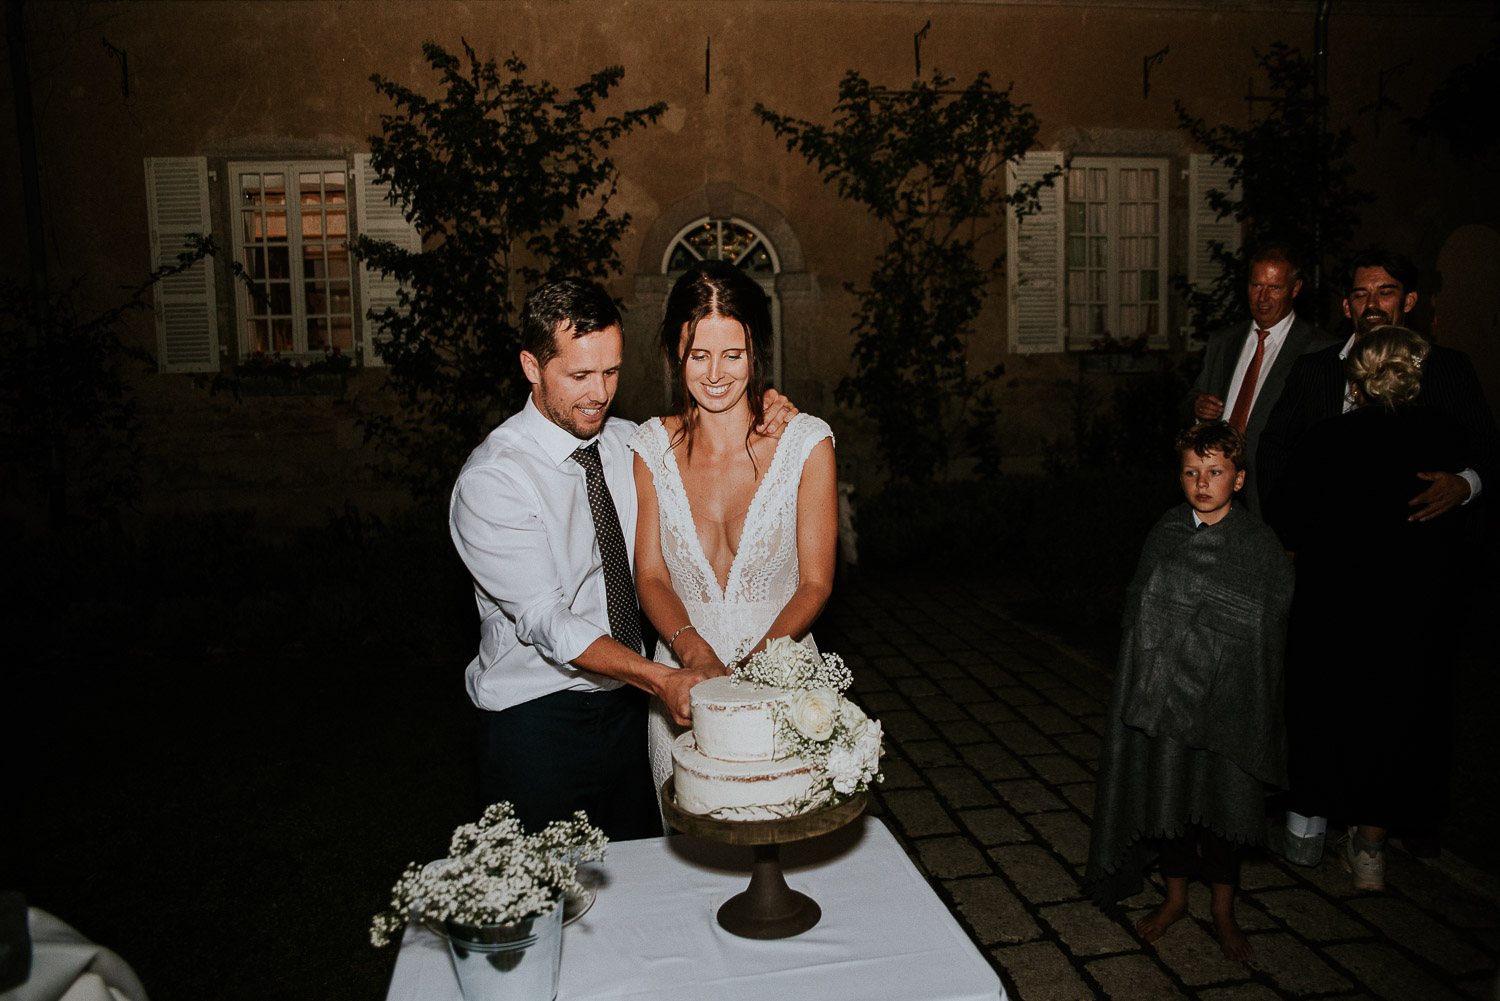 bergerac_wedding_katy_webb_photography_france_UK178